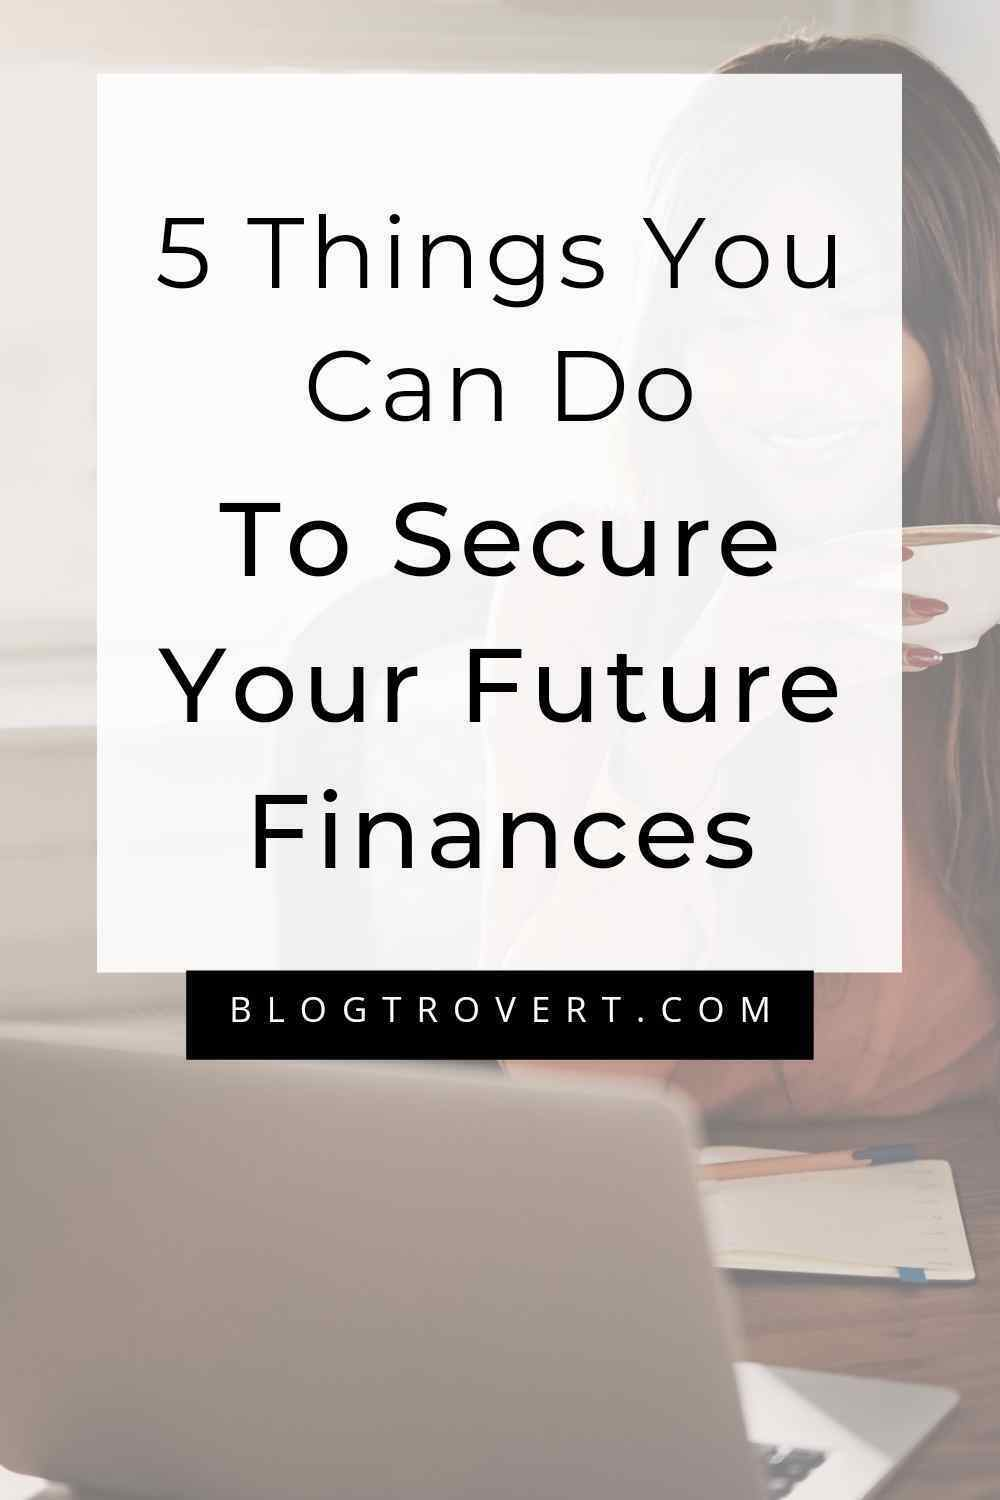 Secure your future finances